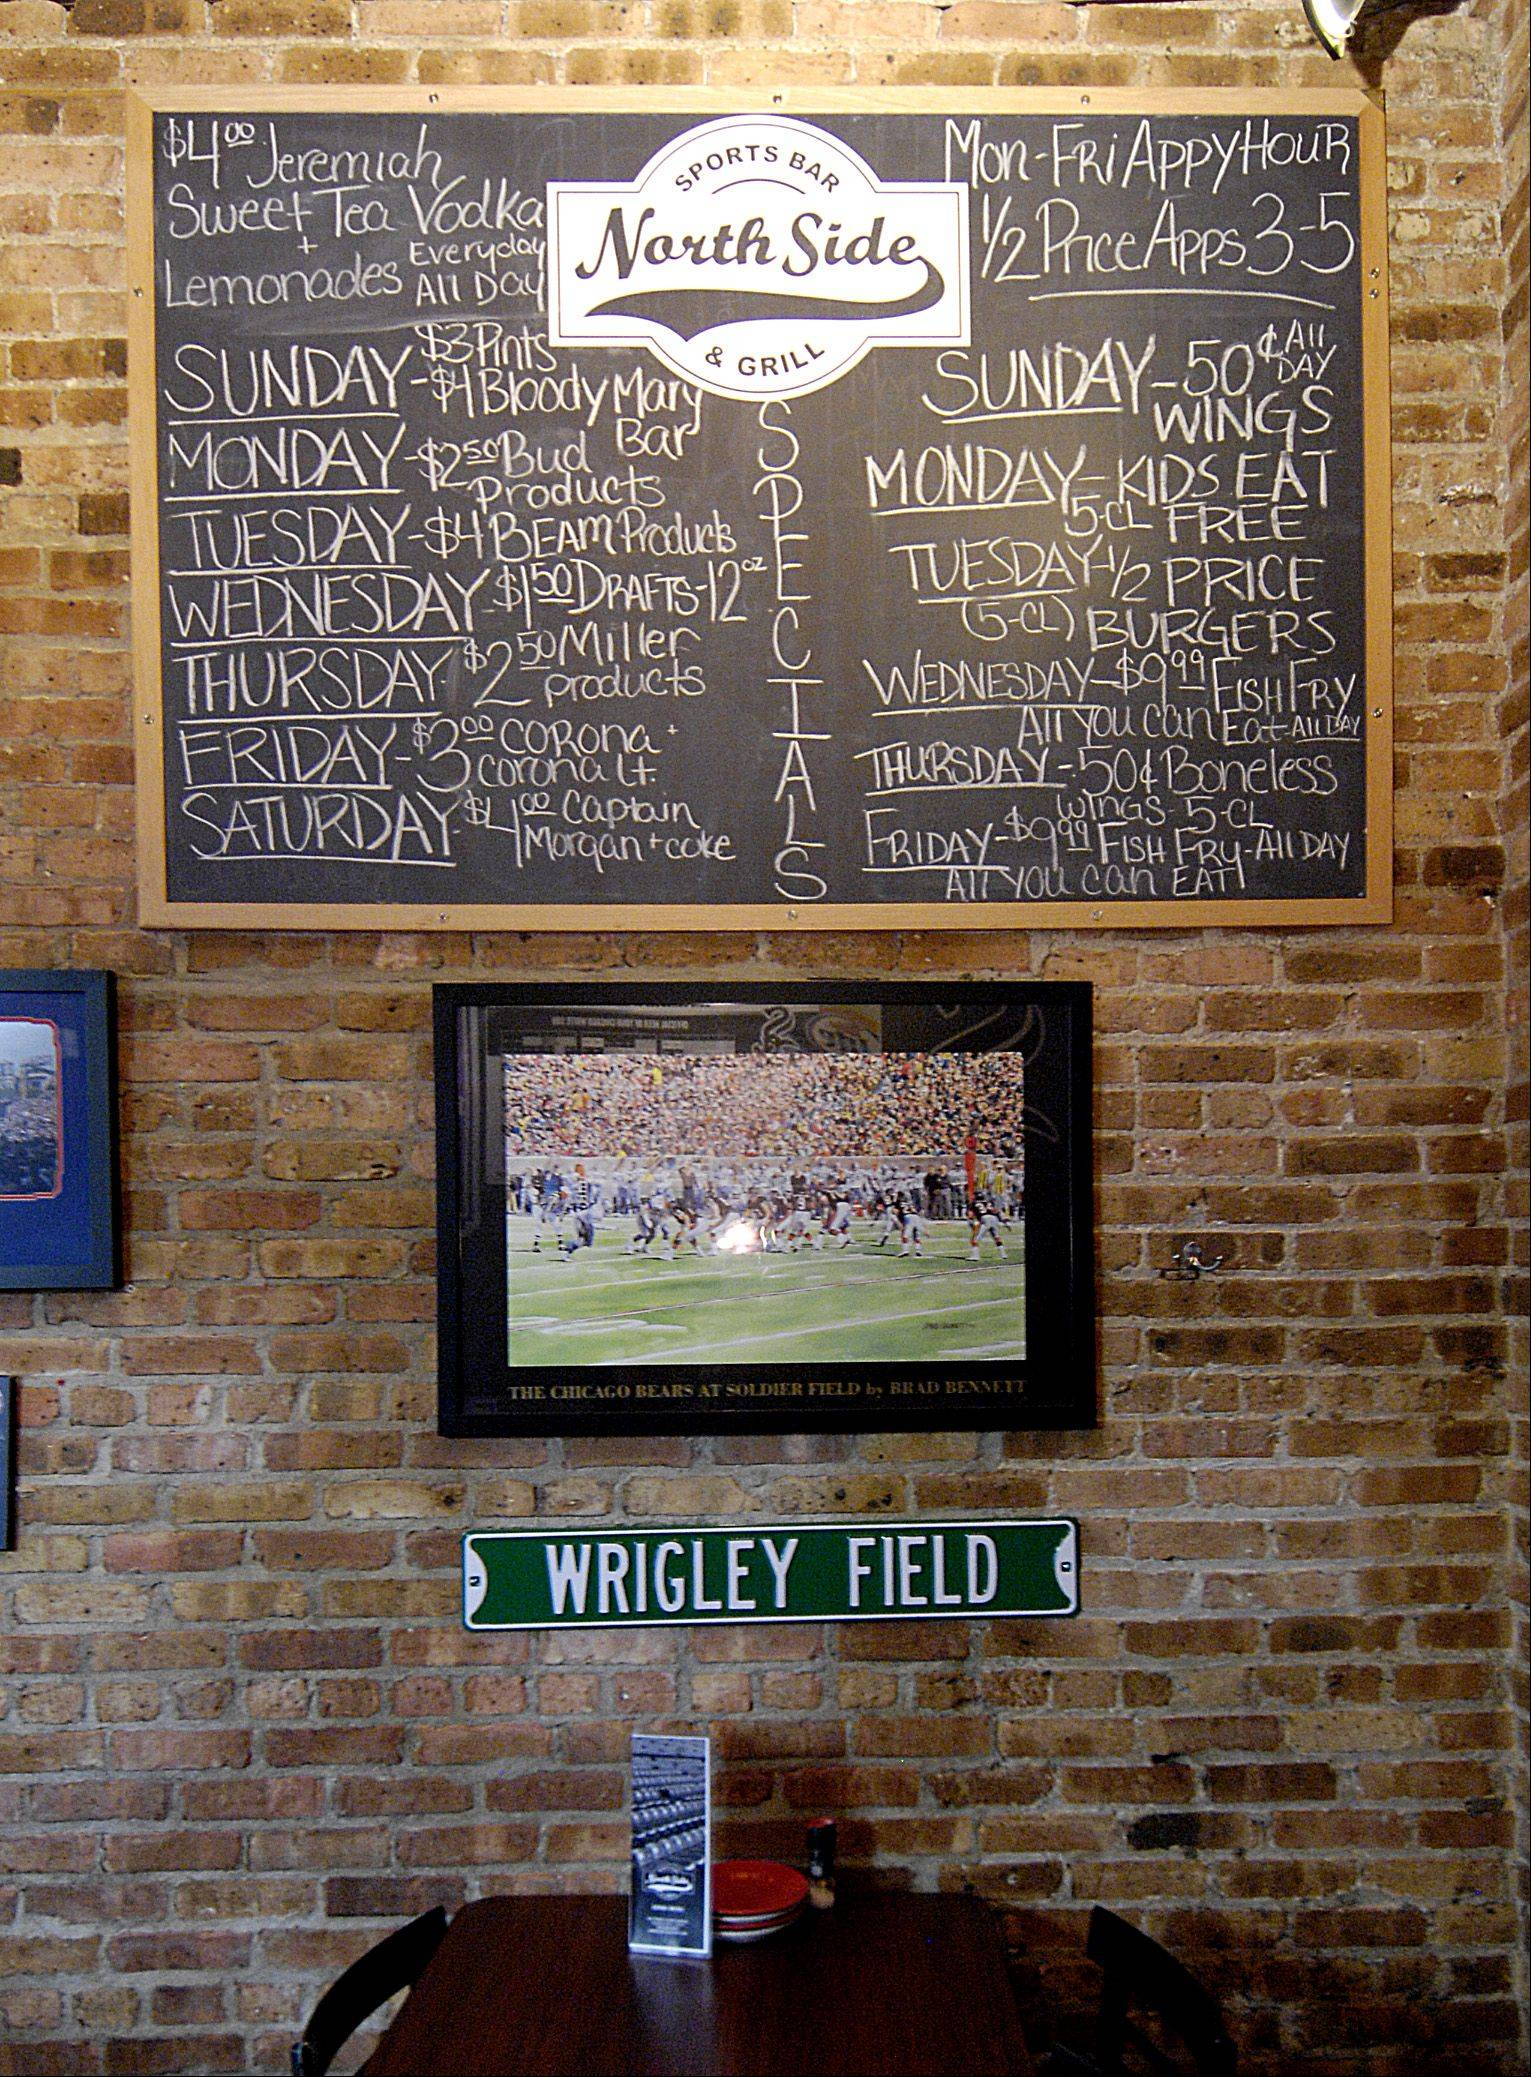 A chalkboard showcases the specials at the North Side Sports Bar & Grill in Glen Ellyn.